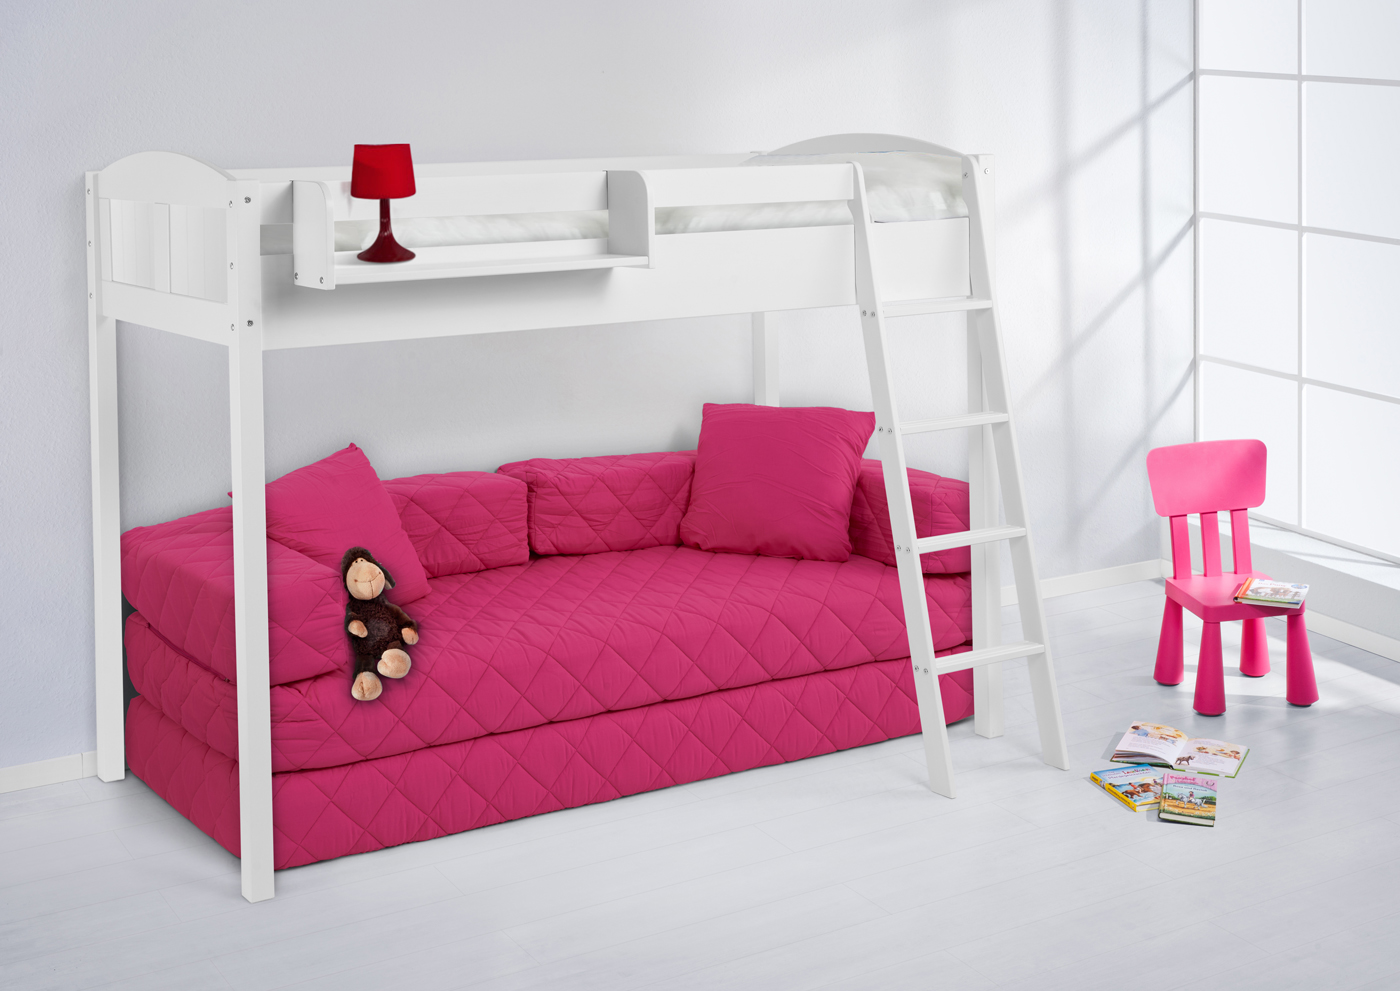 spielbett hochbett kinderbett bett landhaus weiss extra hoch 150 cm neu rost ebay. Black Bedroom Furniture Sets. Home Design Ideas